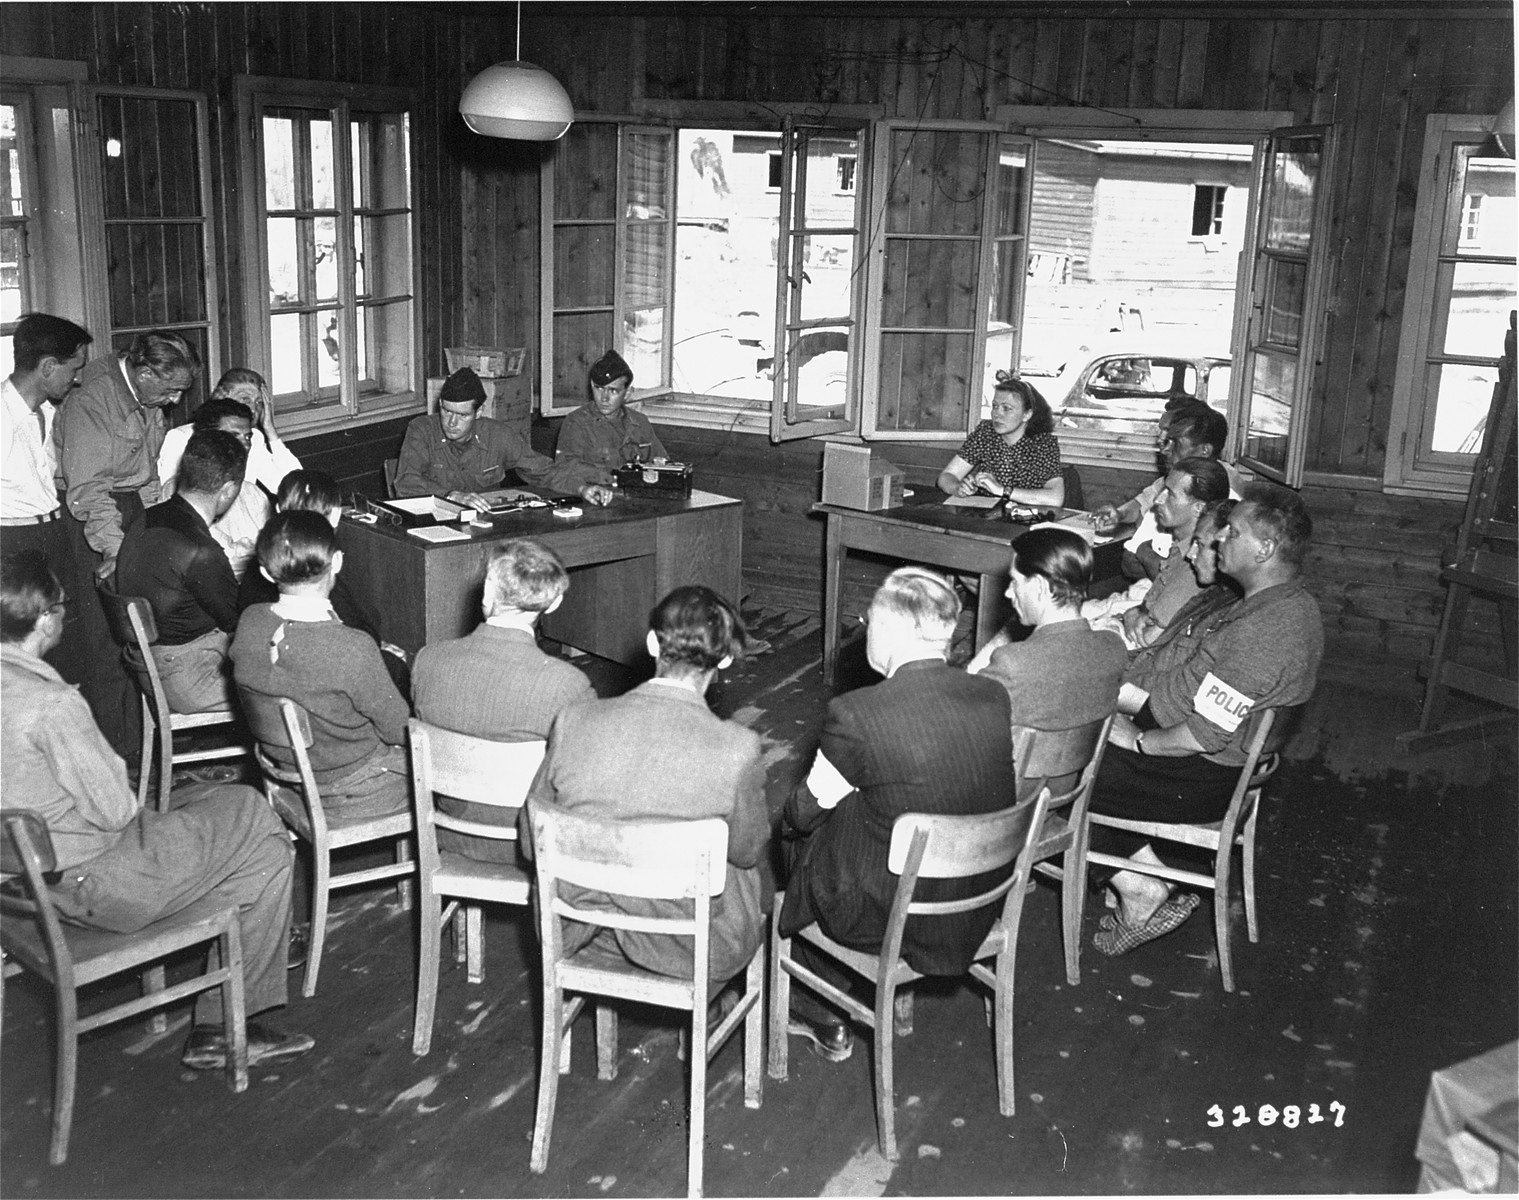 Civilian and military administrative staff of an unidentified DP camp in Austria gather for a daily meeting.   Seated in a semi circle are: 1st Lt Roger W. Perry, Phoenix, Arizona, camp commandant and 1st Lt David B. Moore, Winona, Mass, executive officer.